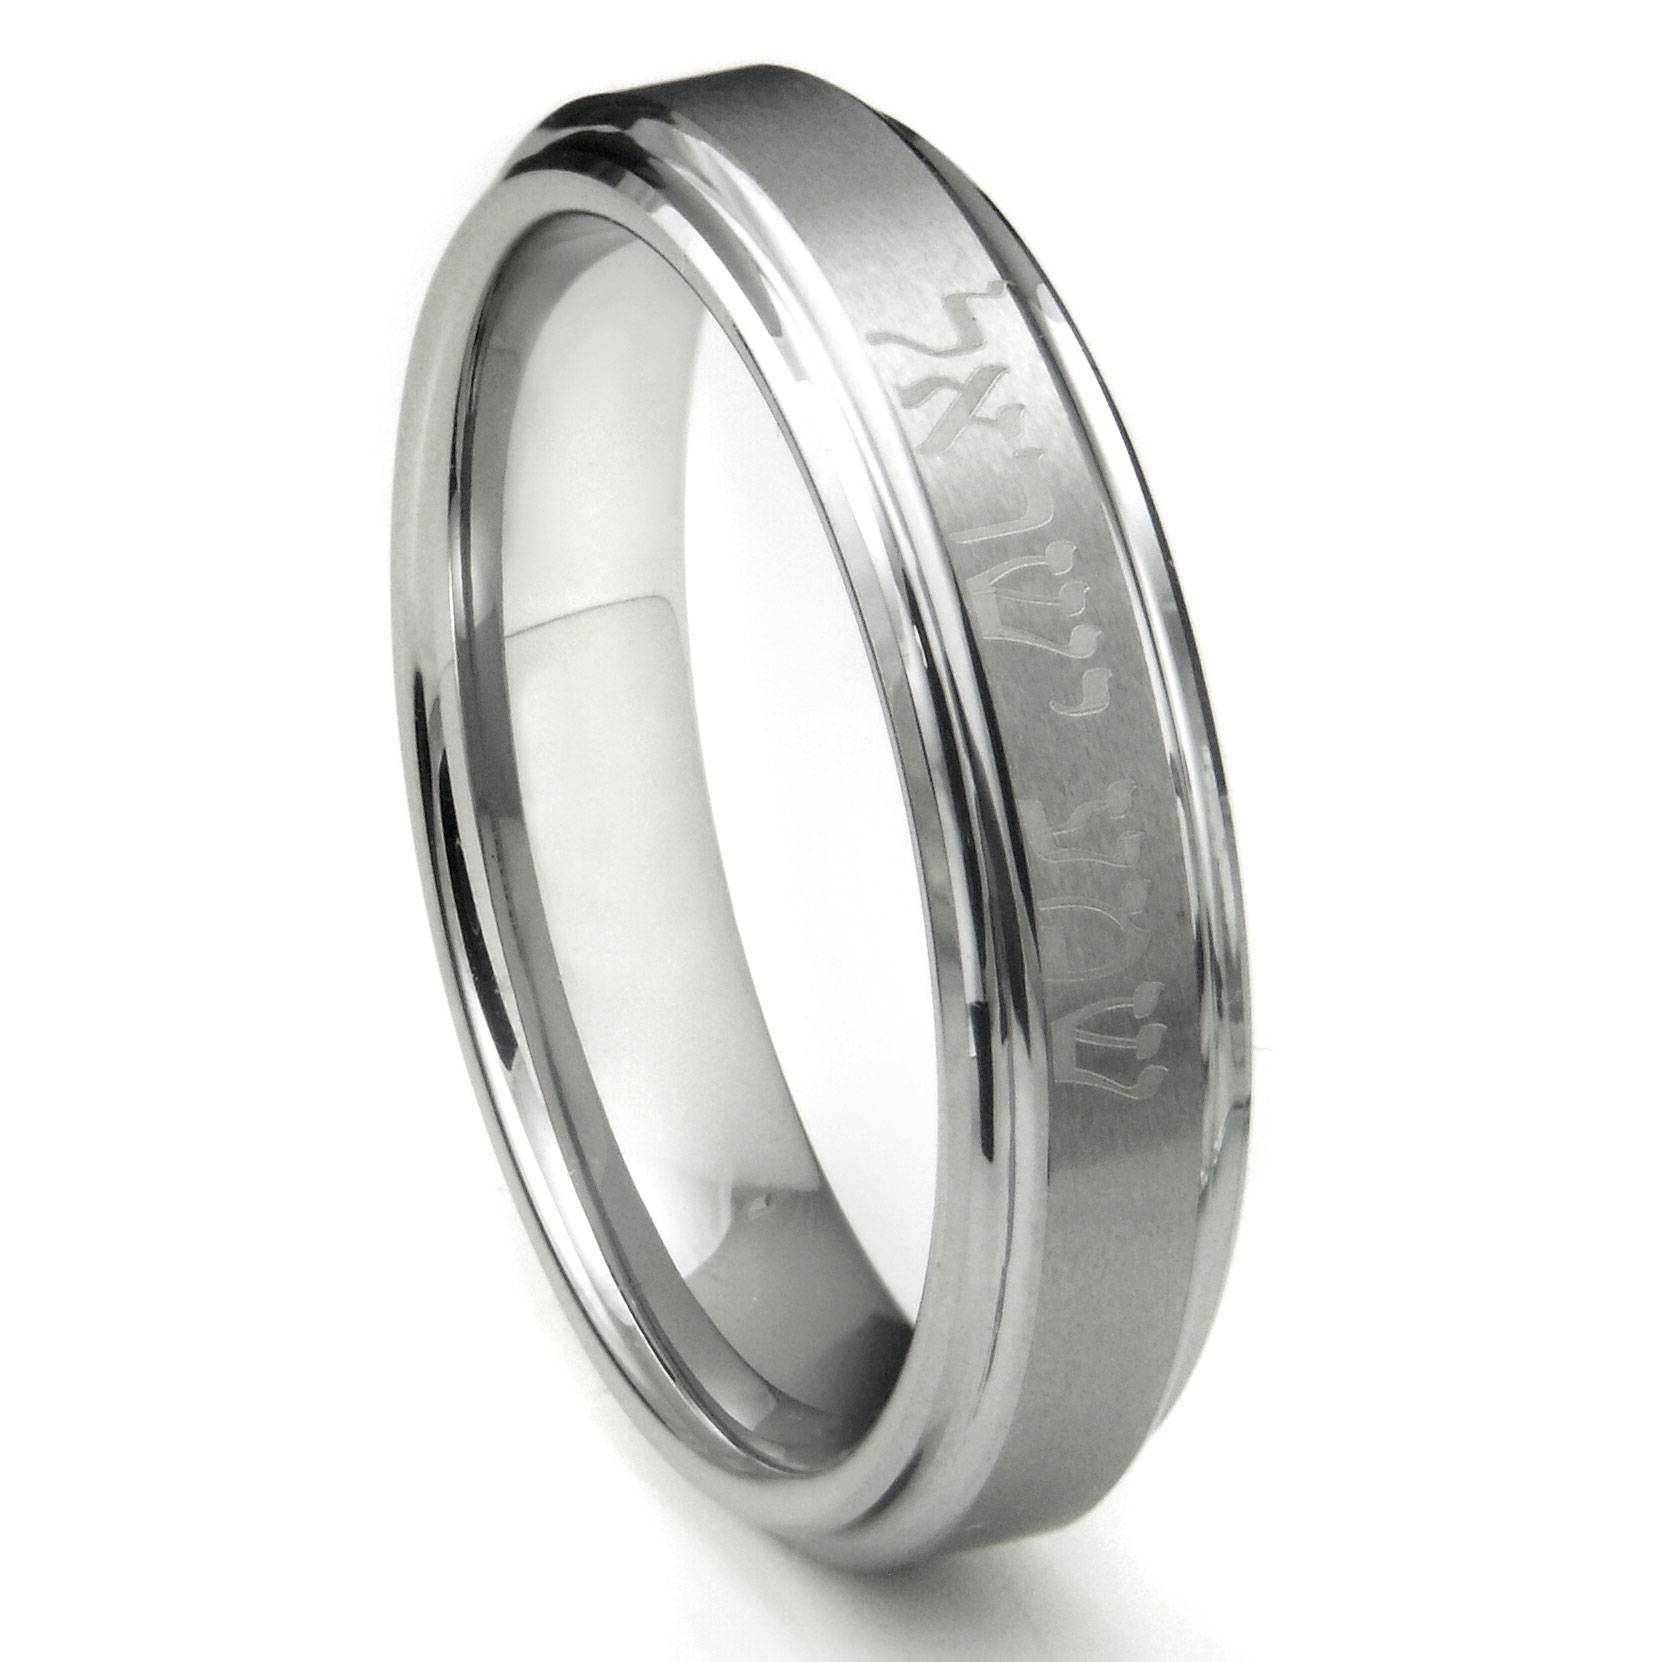 Wedding Rings : How Much Does It Cost To Engrave A Ring At Things Intended For Latest Husband Wedding Bands (View 14 of 15)